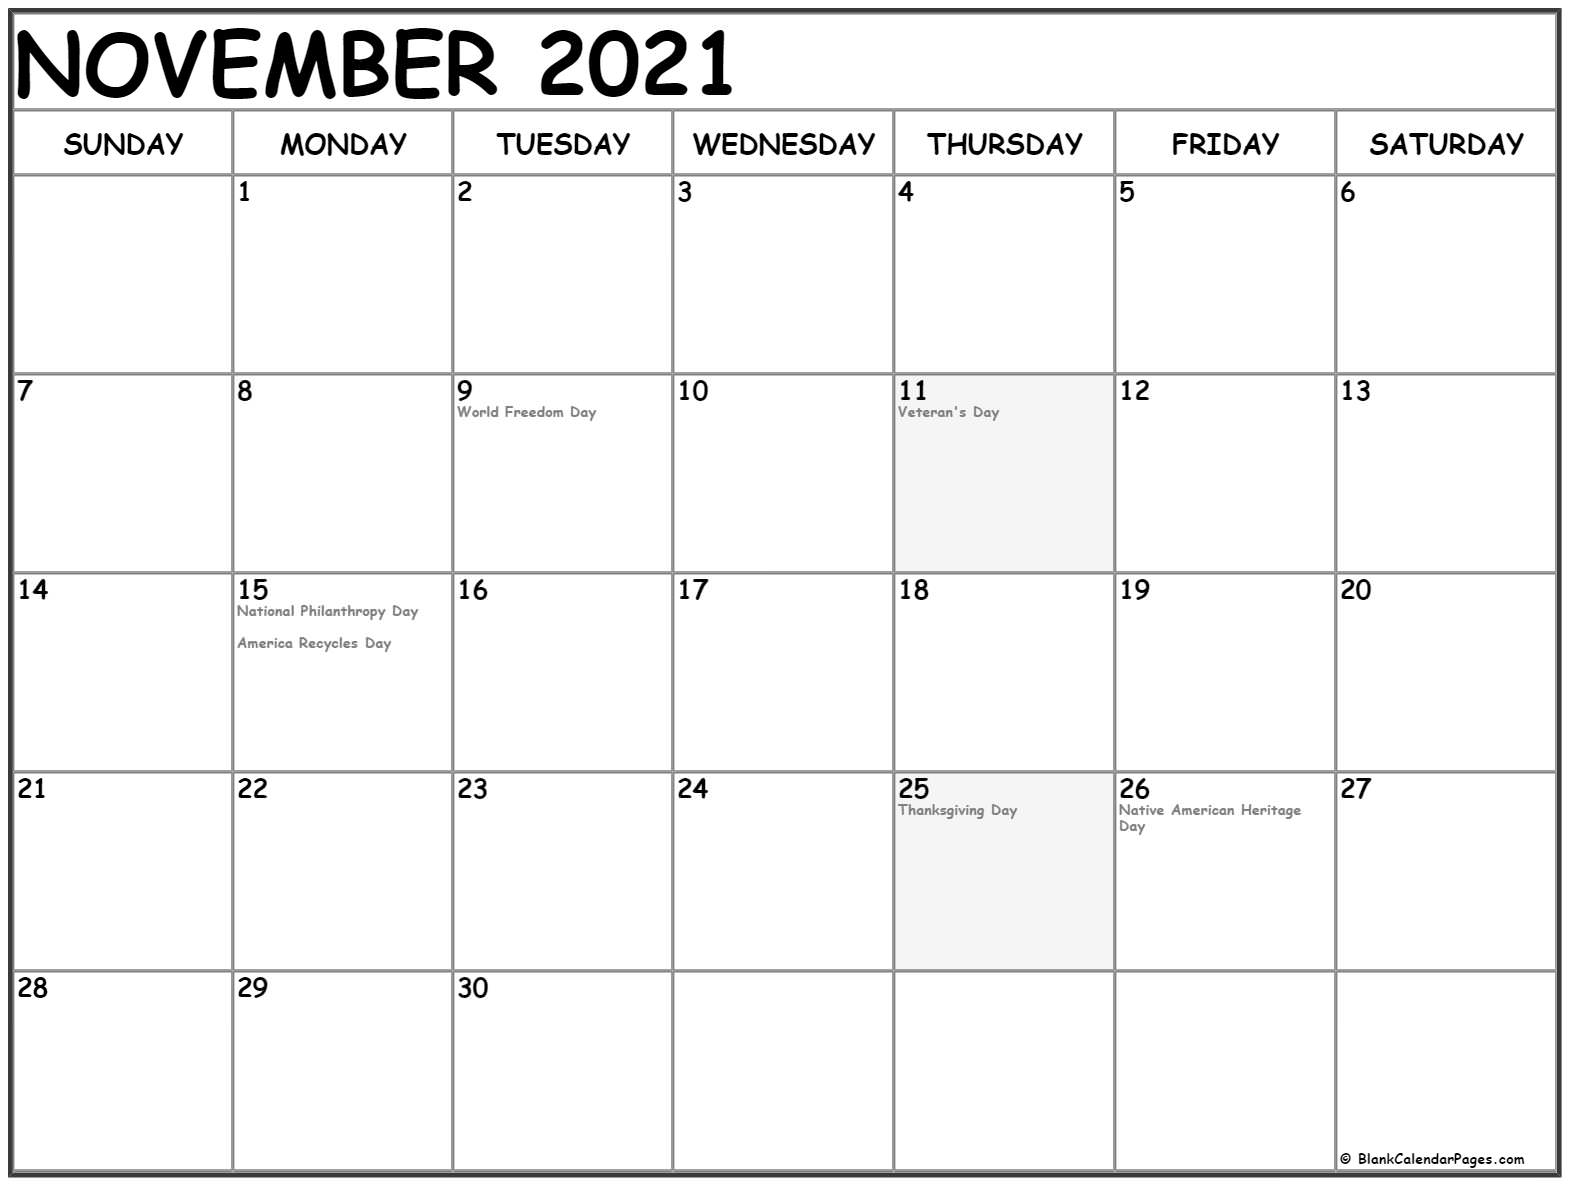 November 2021 calendar with USA holidays